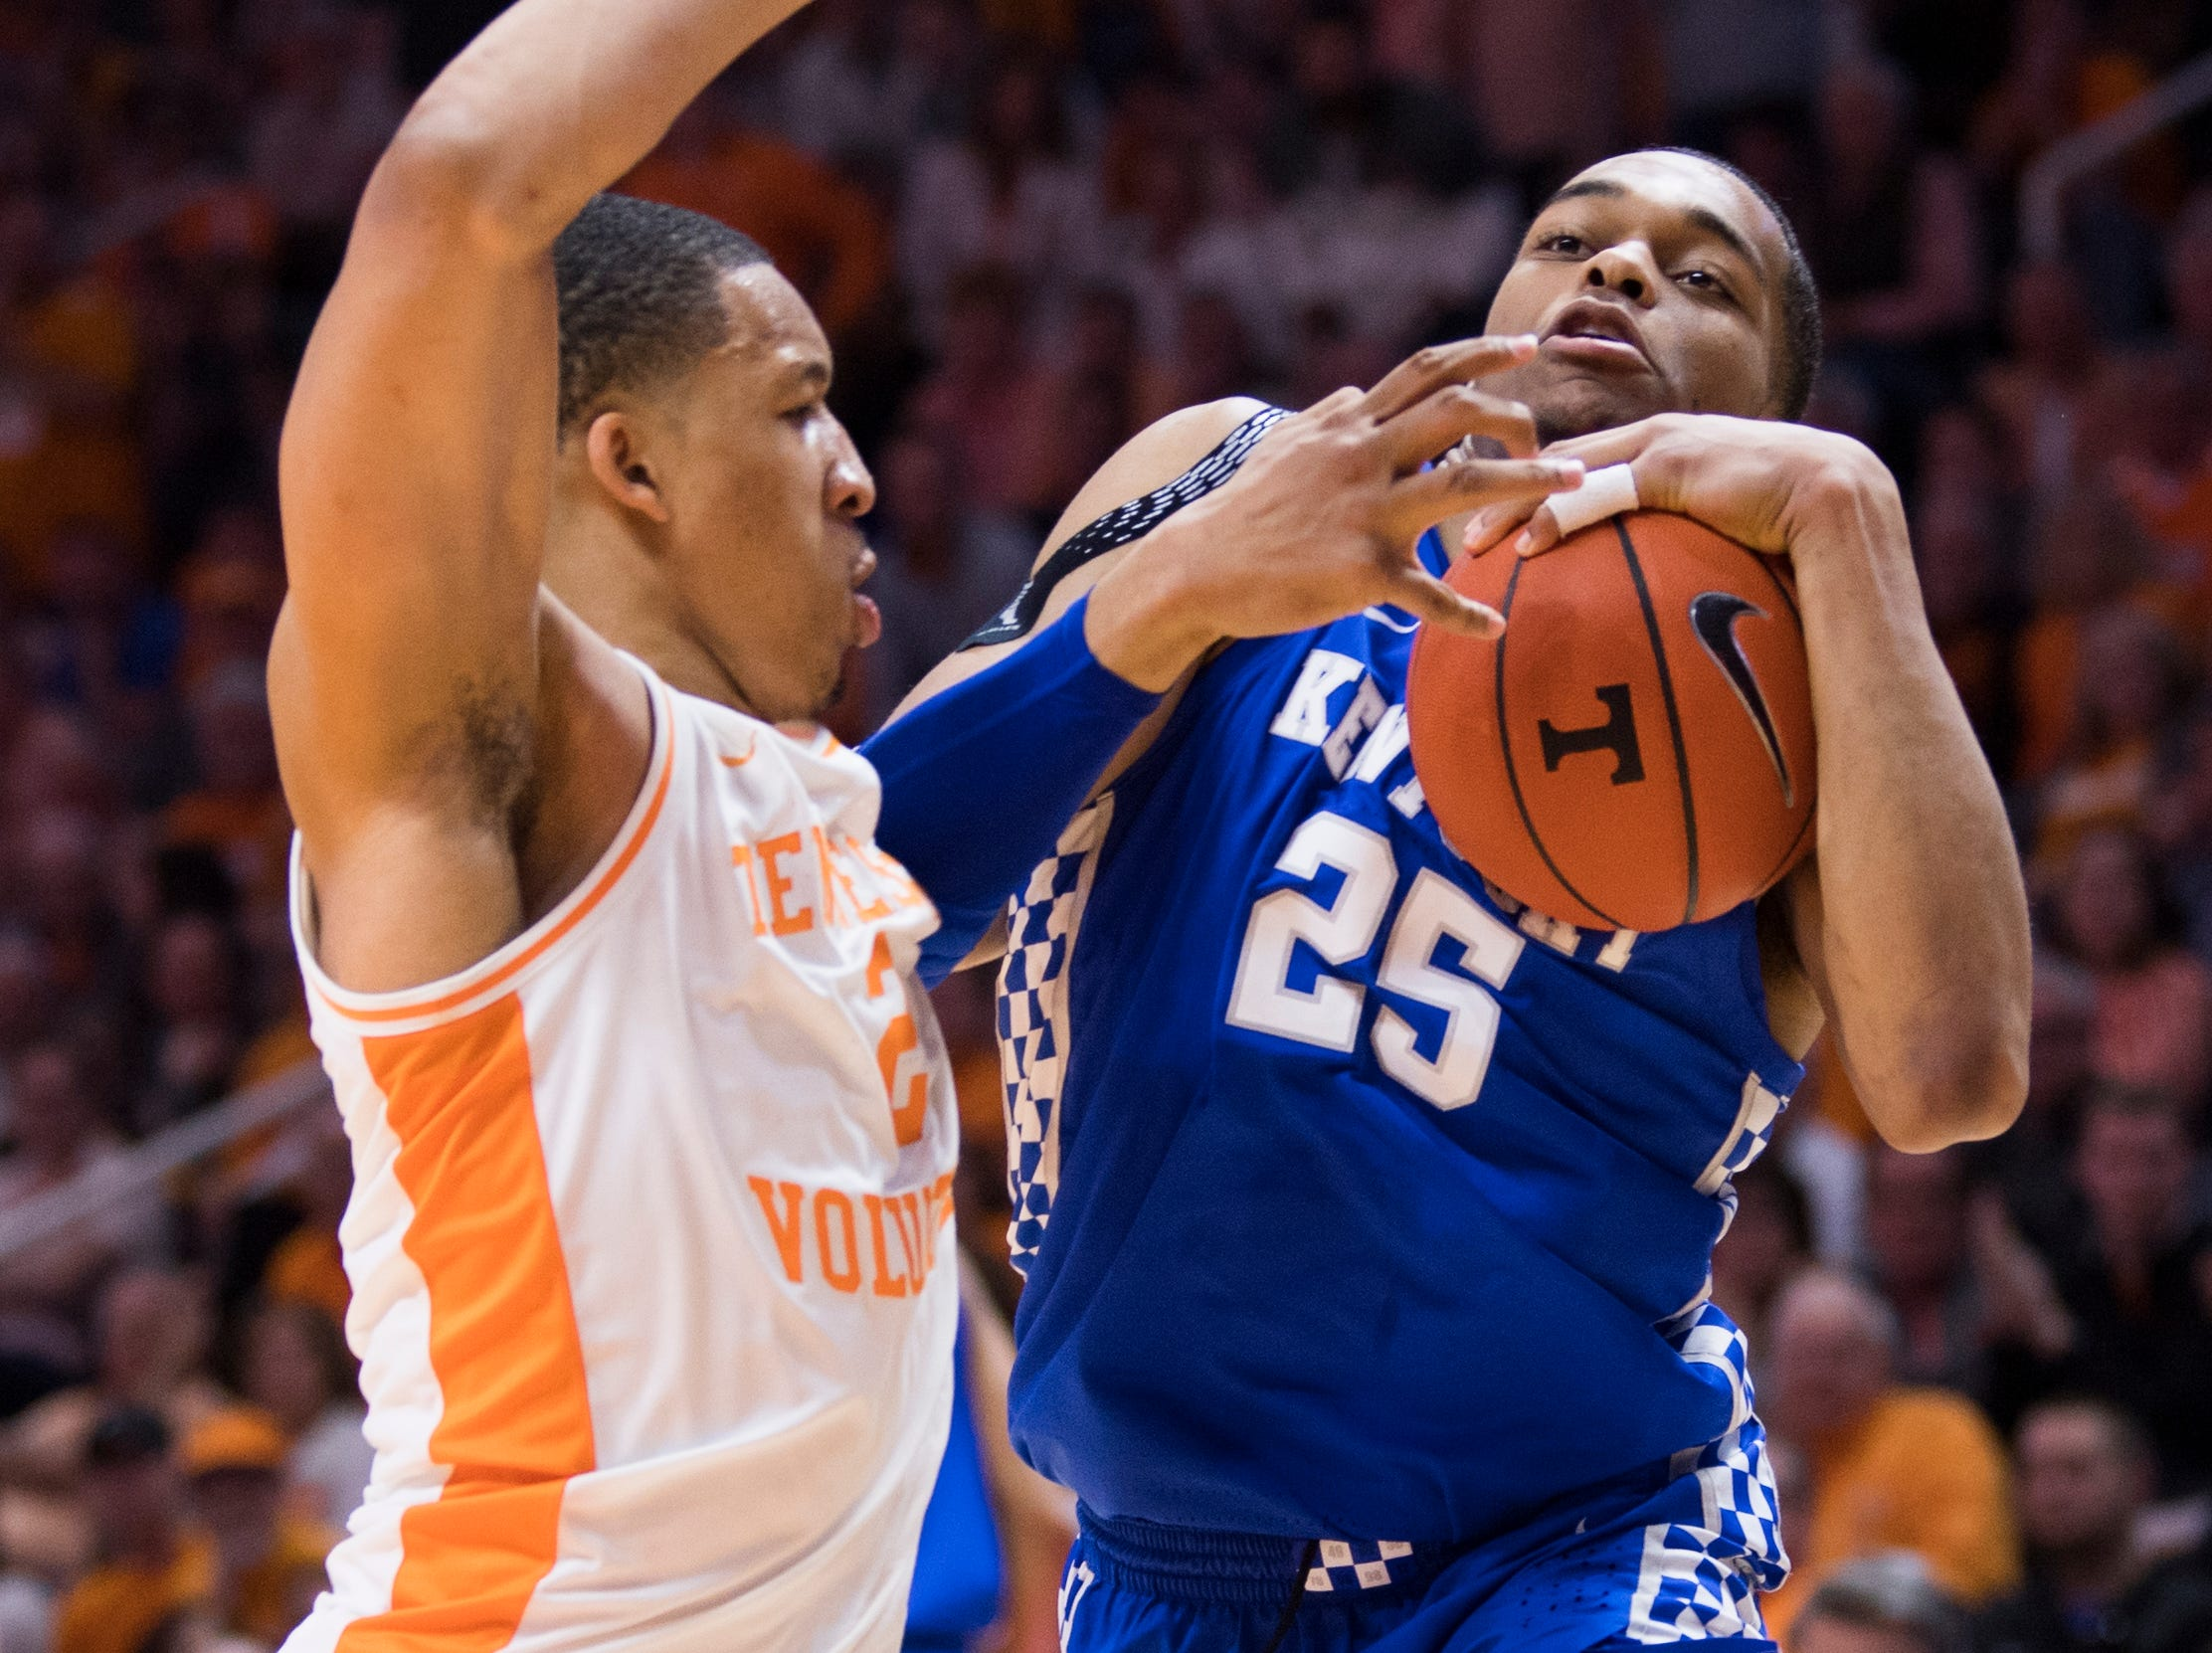 Tennessee forward Grant Williams (2) folds Kentucky PJ Washington (25) during Tennessee's home basketball game against Kentucky at Thompson-Boling Arena in Knoxville on Saturday, March 2, 2019.